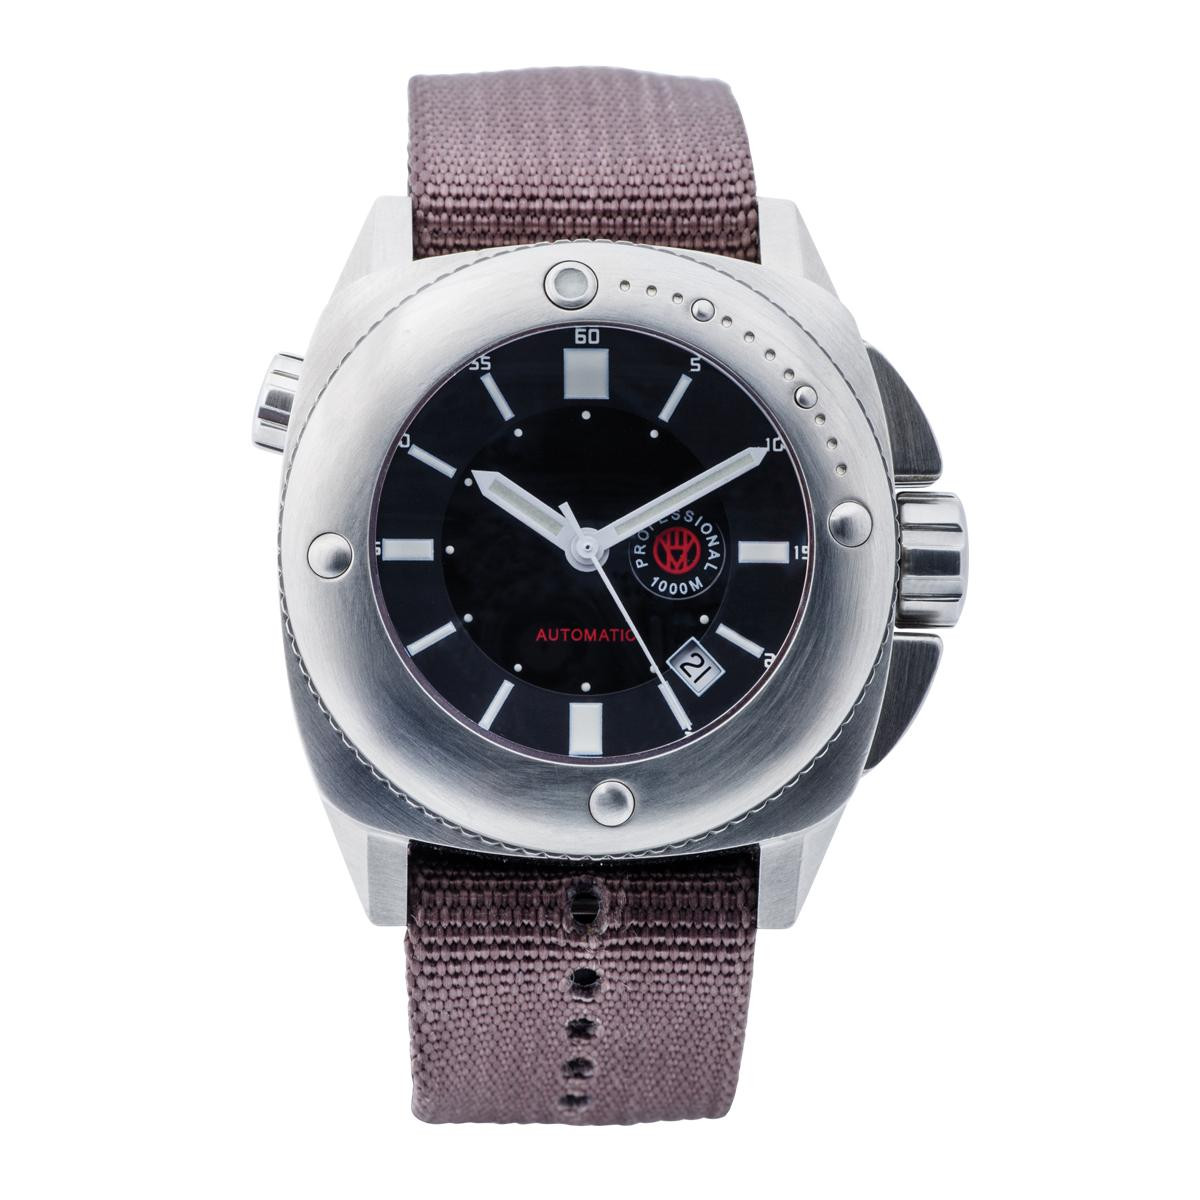 Preowned Enzo Mechana Diver Watch